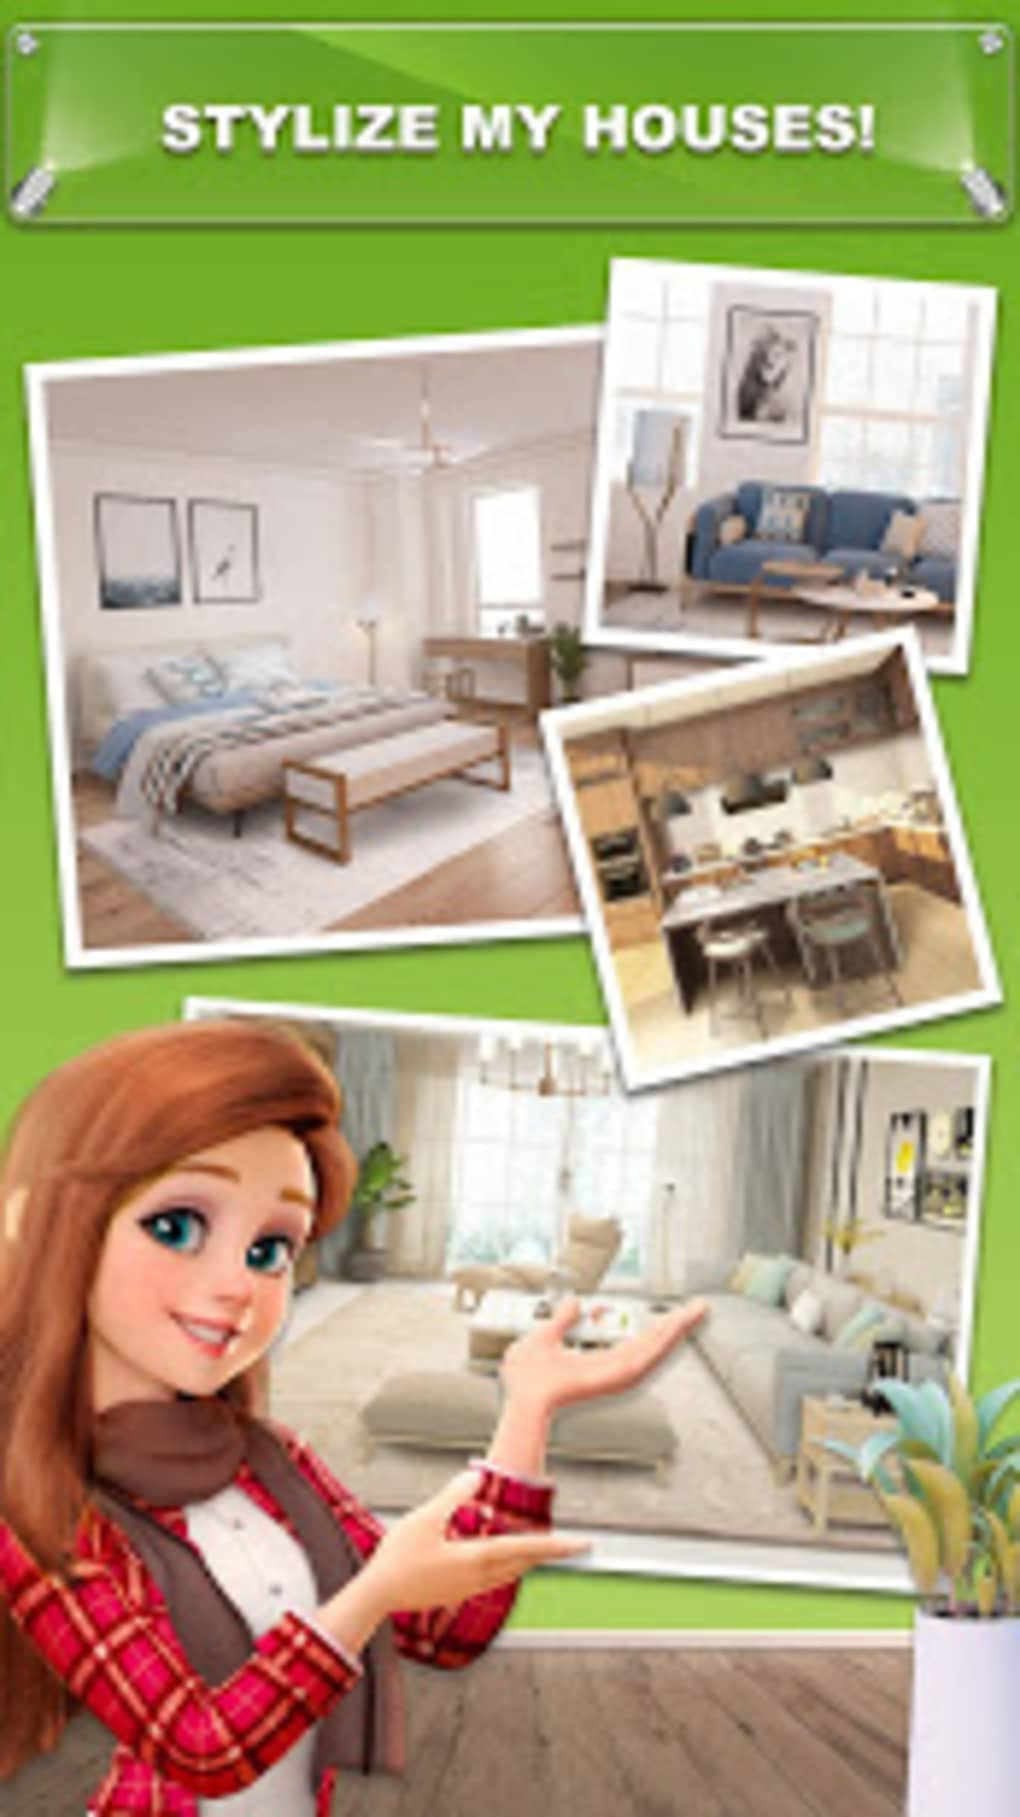 My Home   Design Dreams for Android   Download